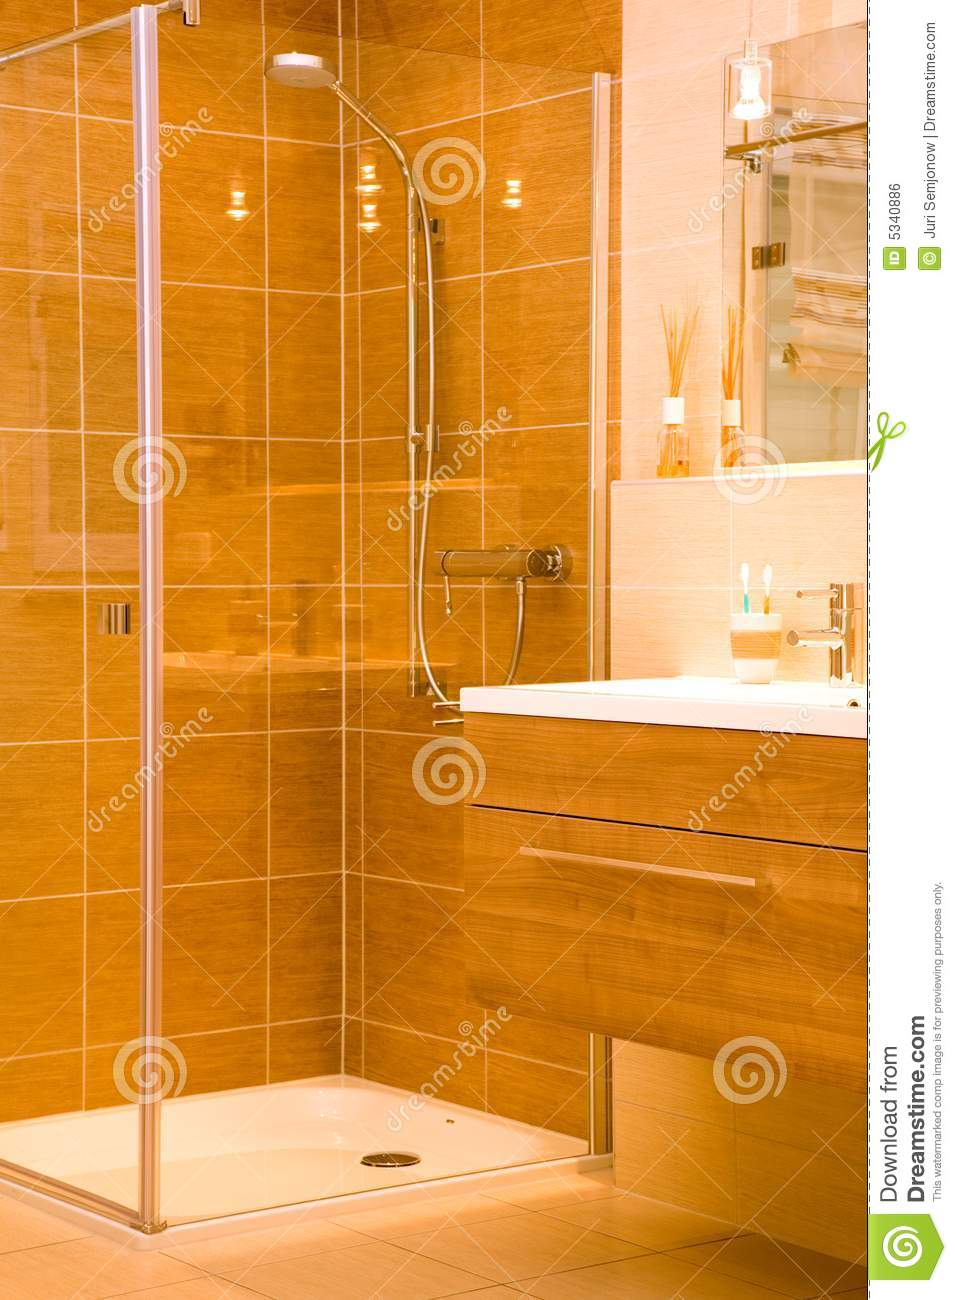 Stunning image douche moderne ideas for Agencement salle de bain 5m2